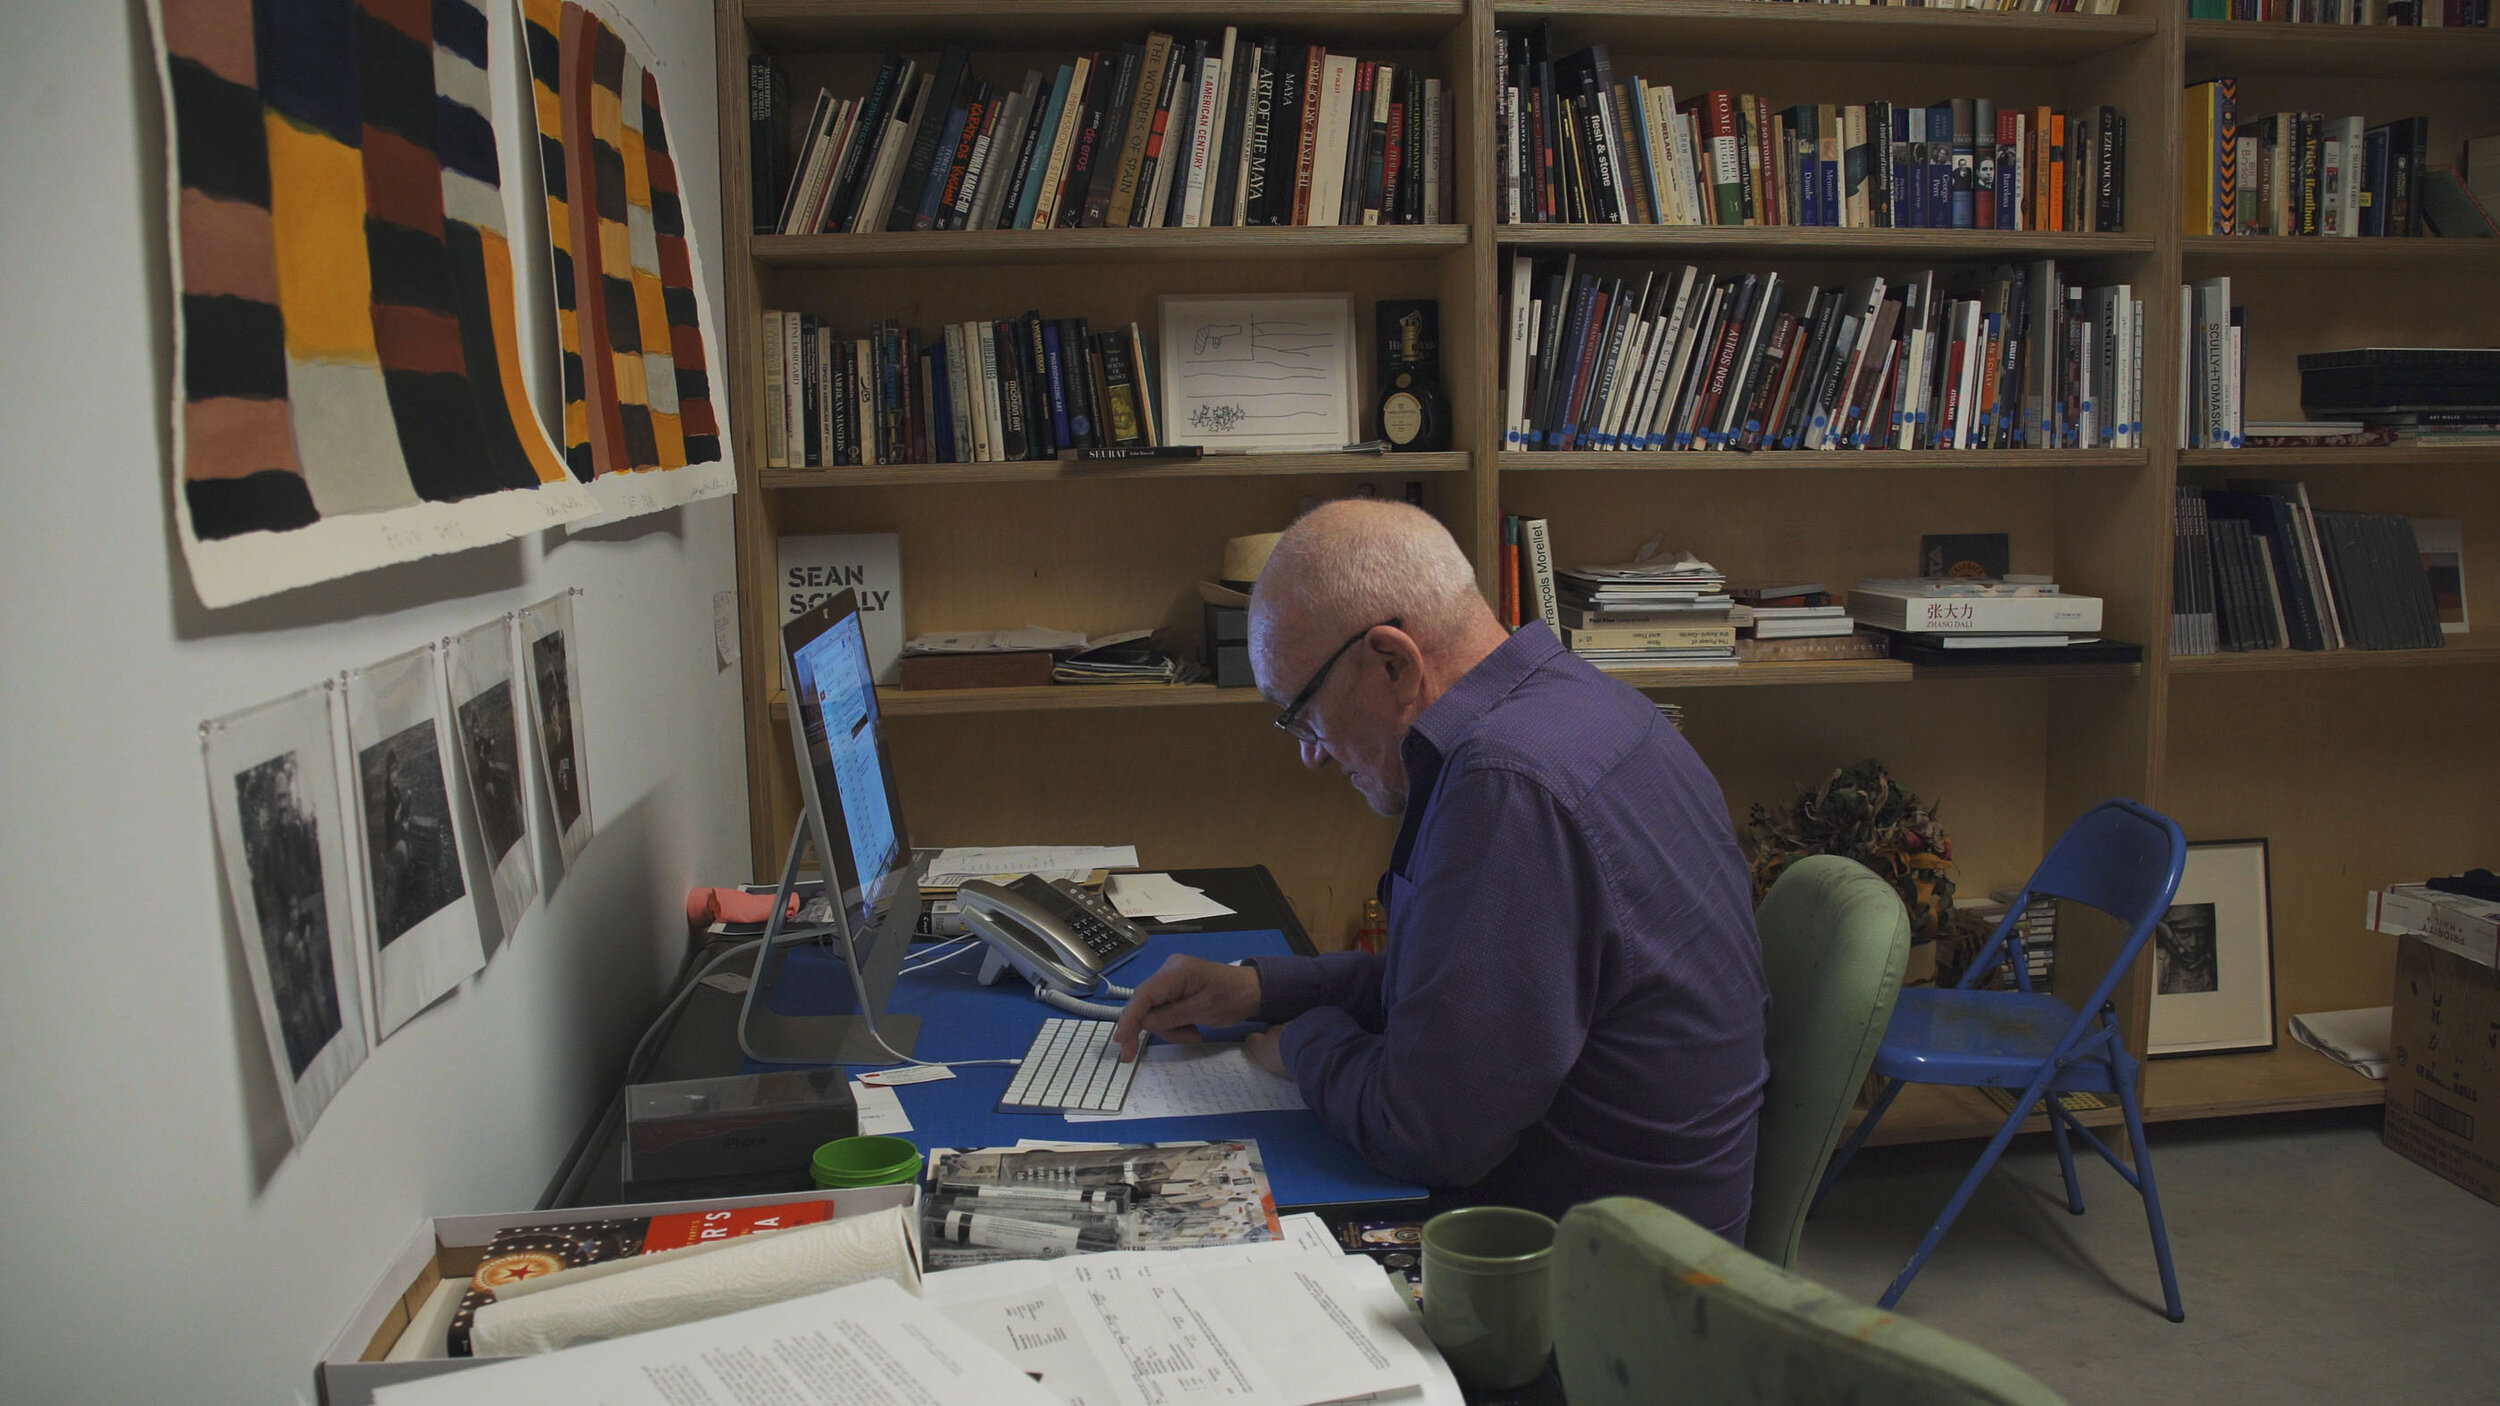 04 Scully in his Tappan Office.jpg